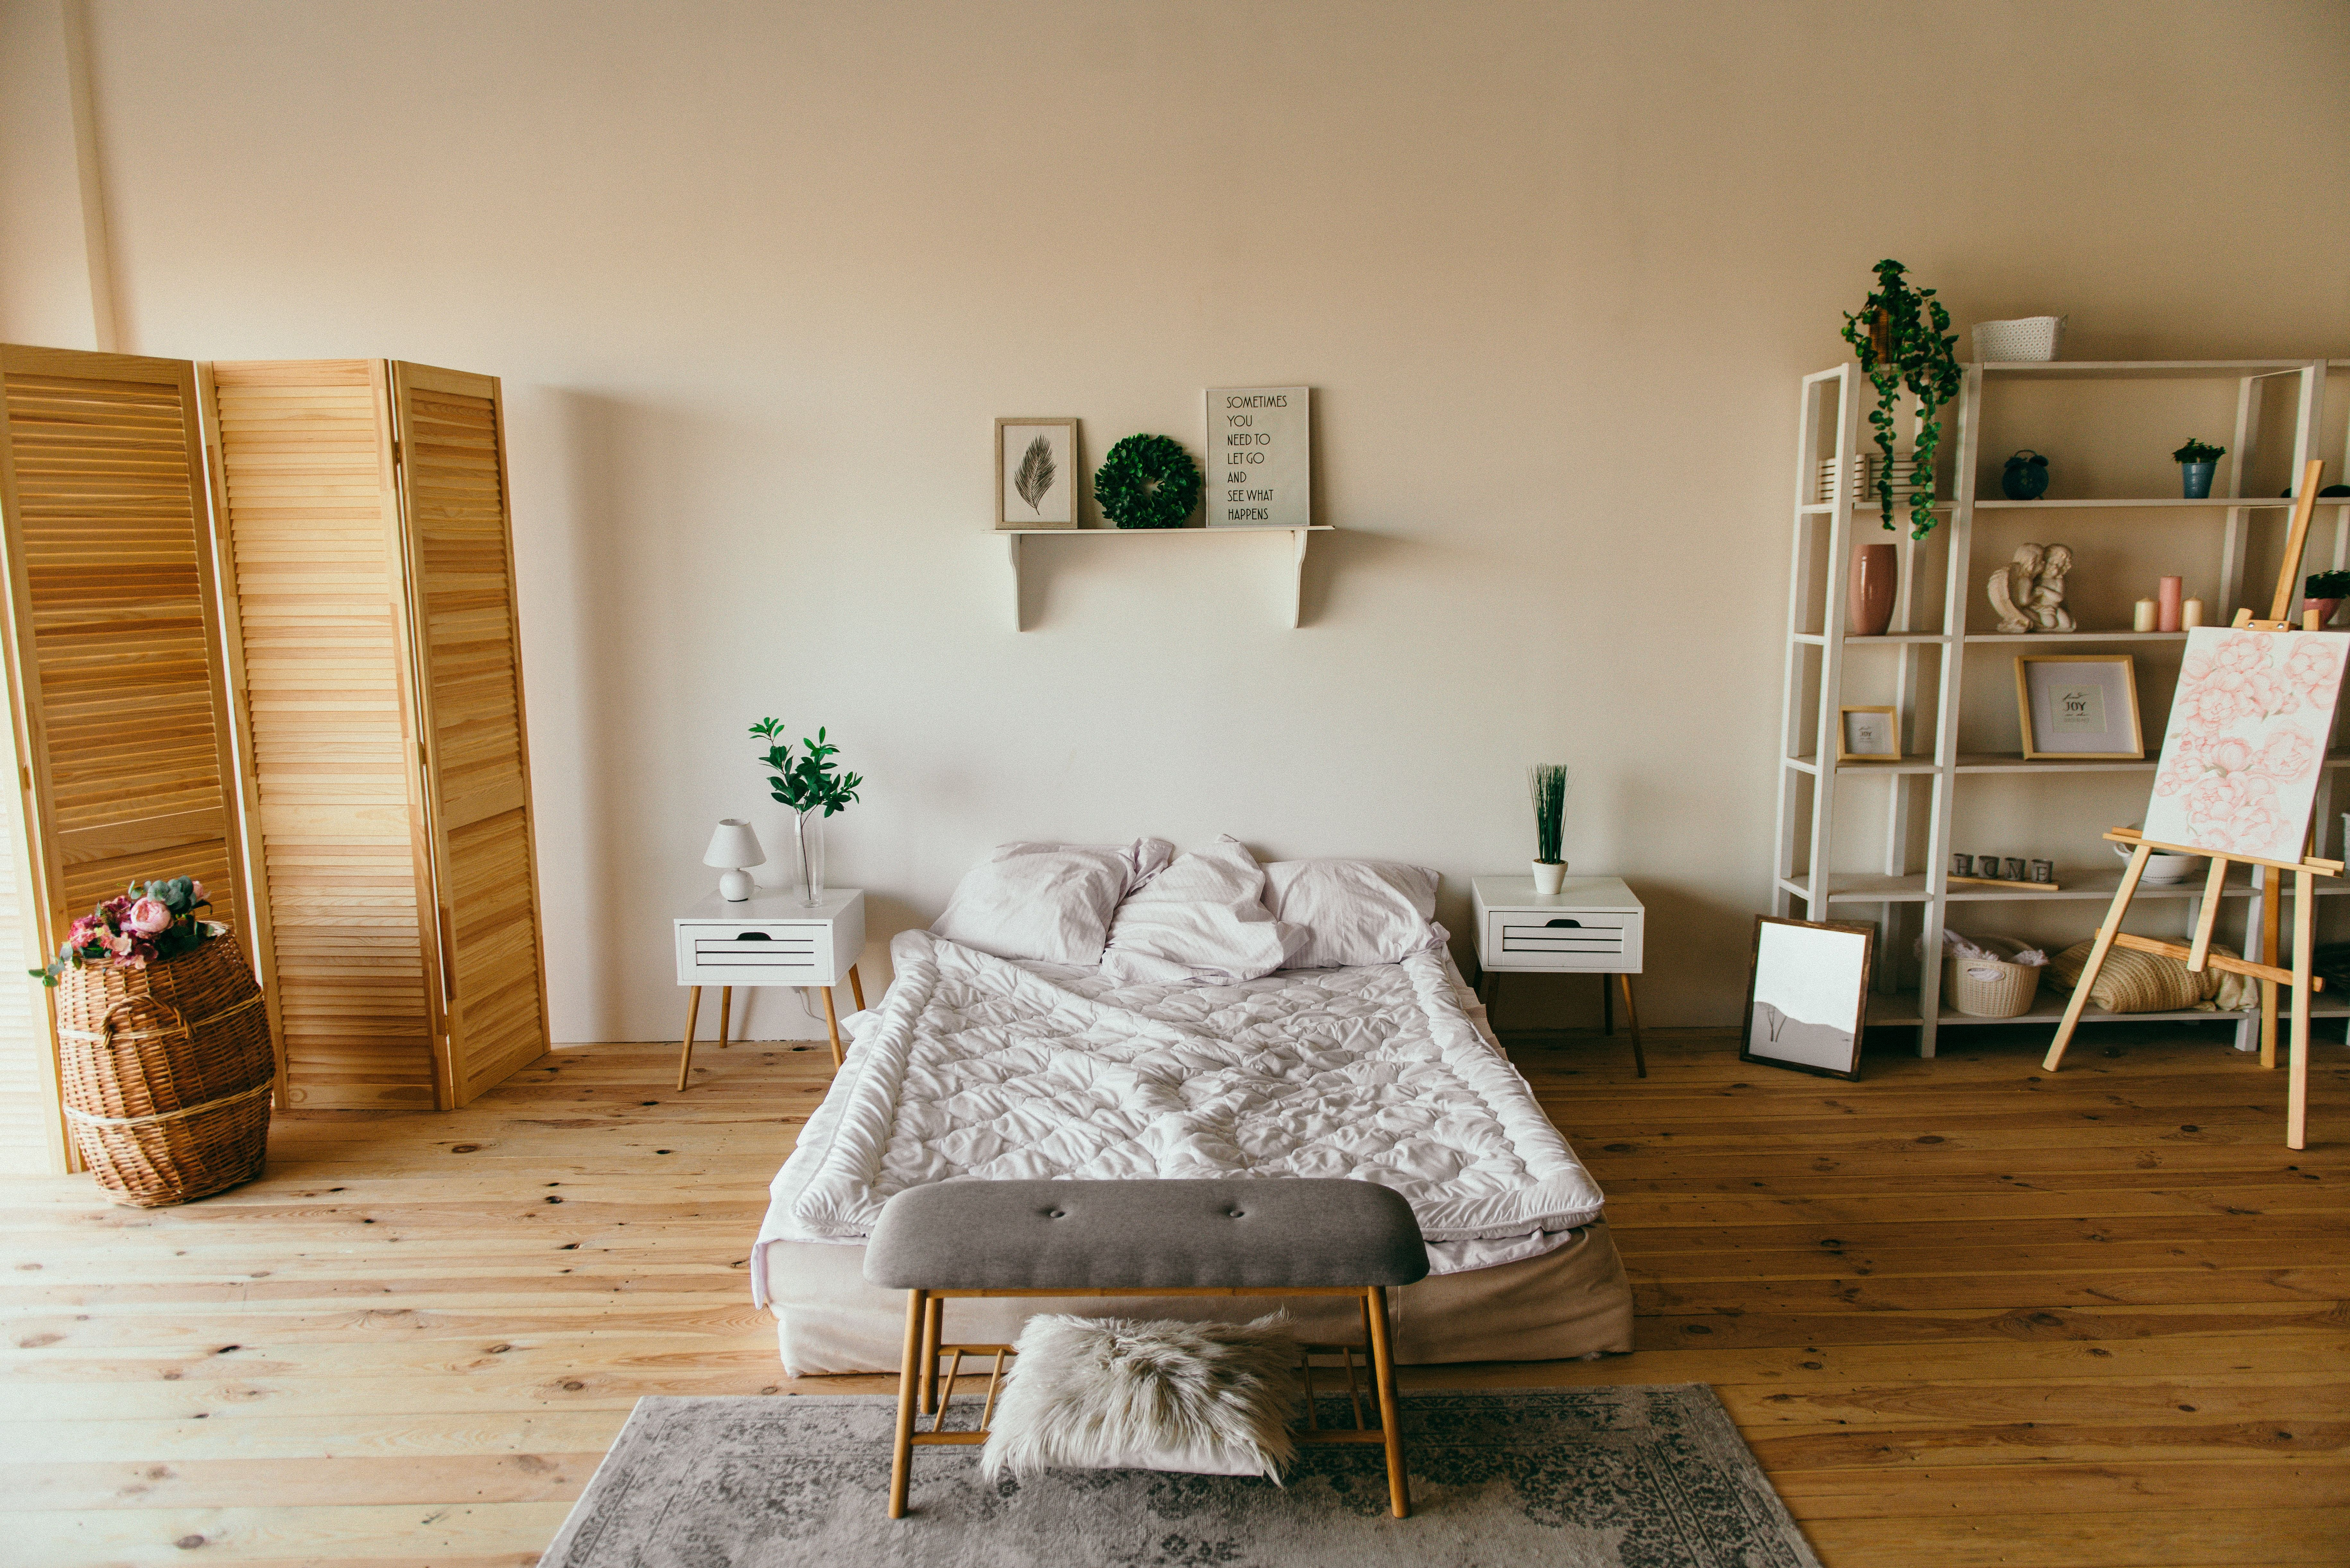 Tips to create a positive space within your room